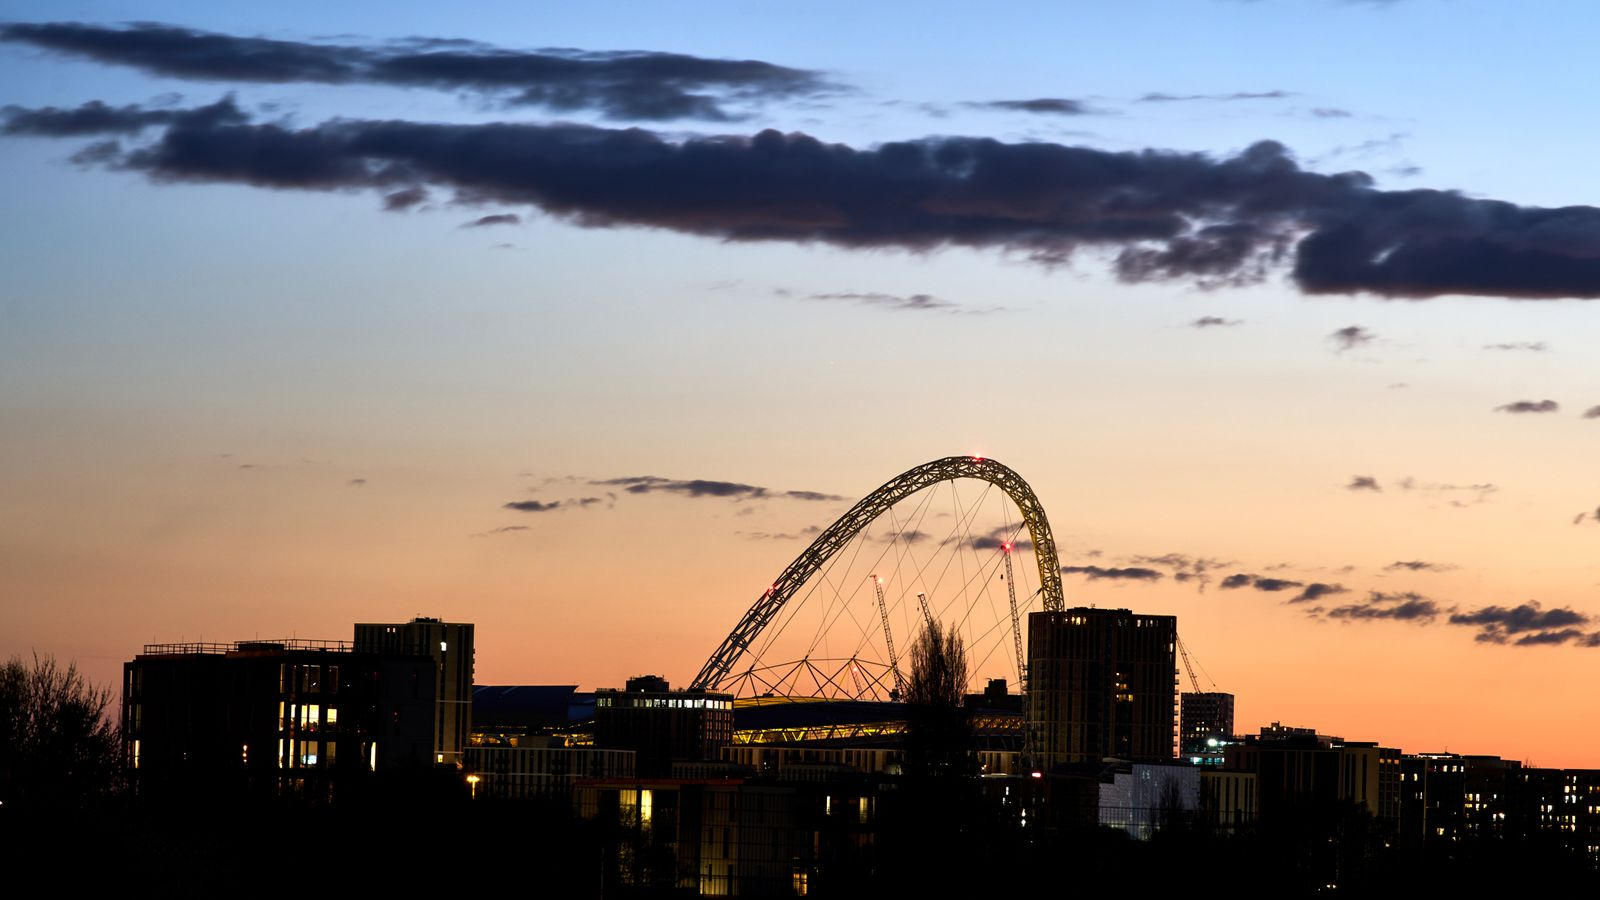 COVID-19: Thousands of fans return to Wembley for FA Cup semi-final as part of coronavirus events trial